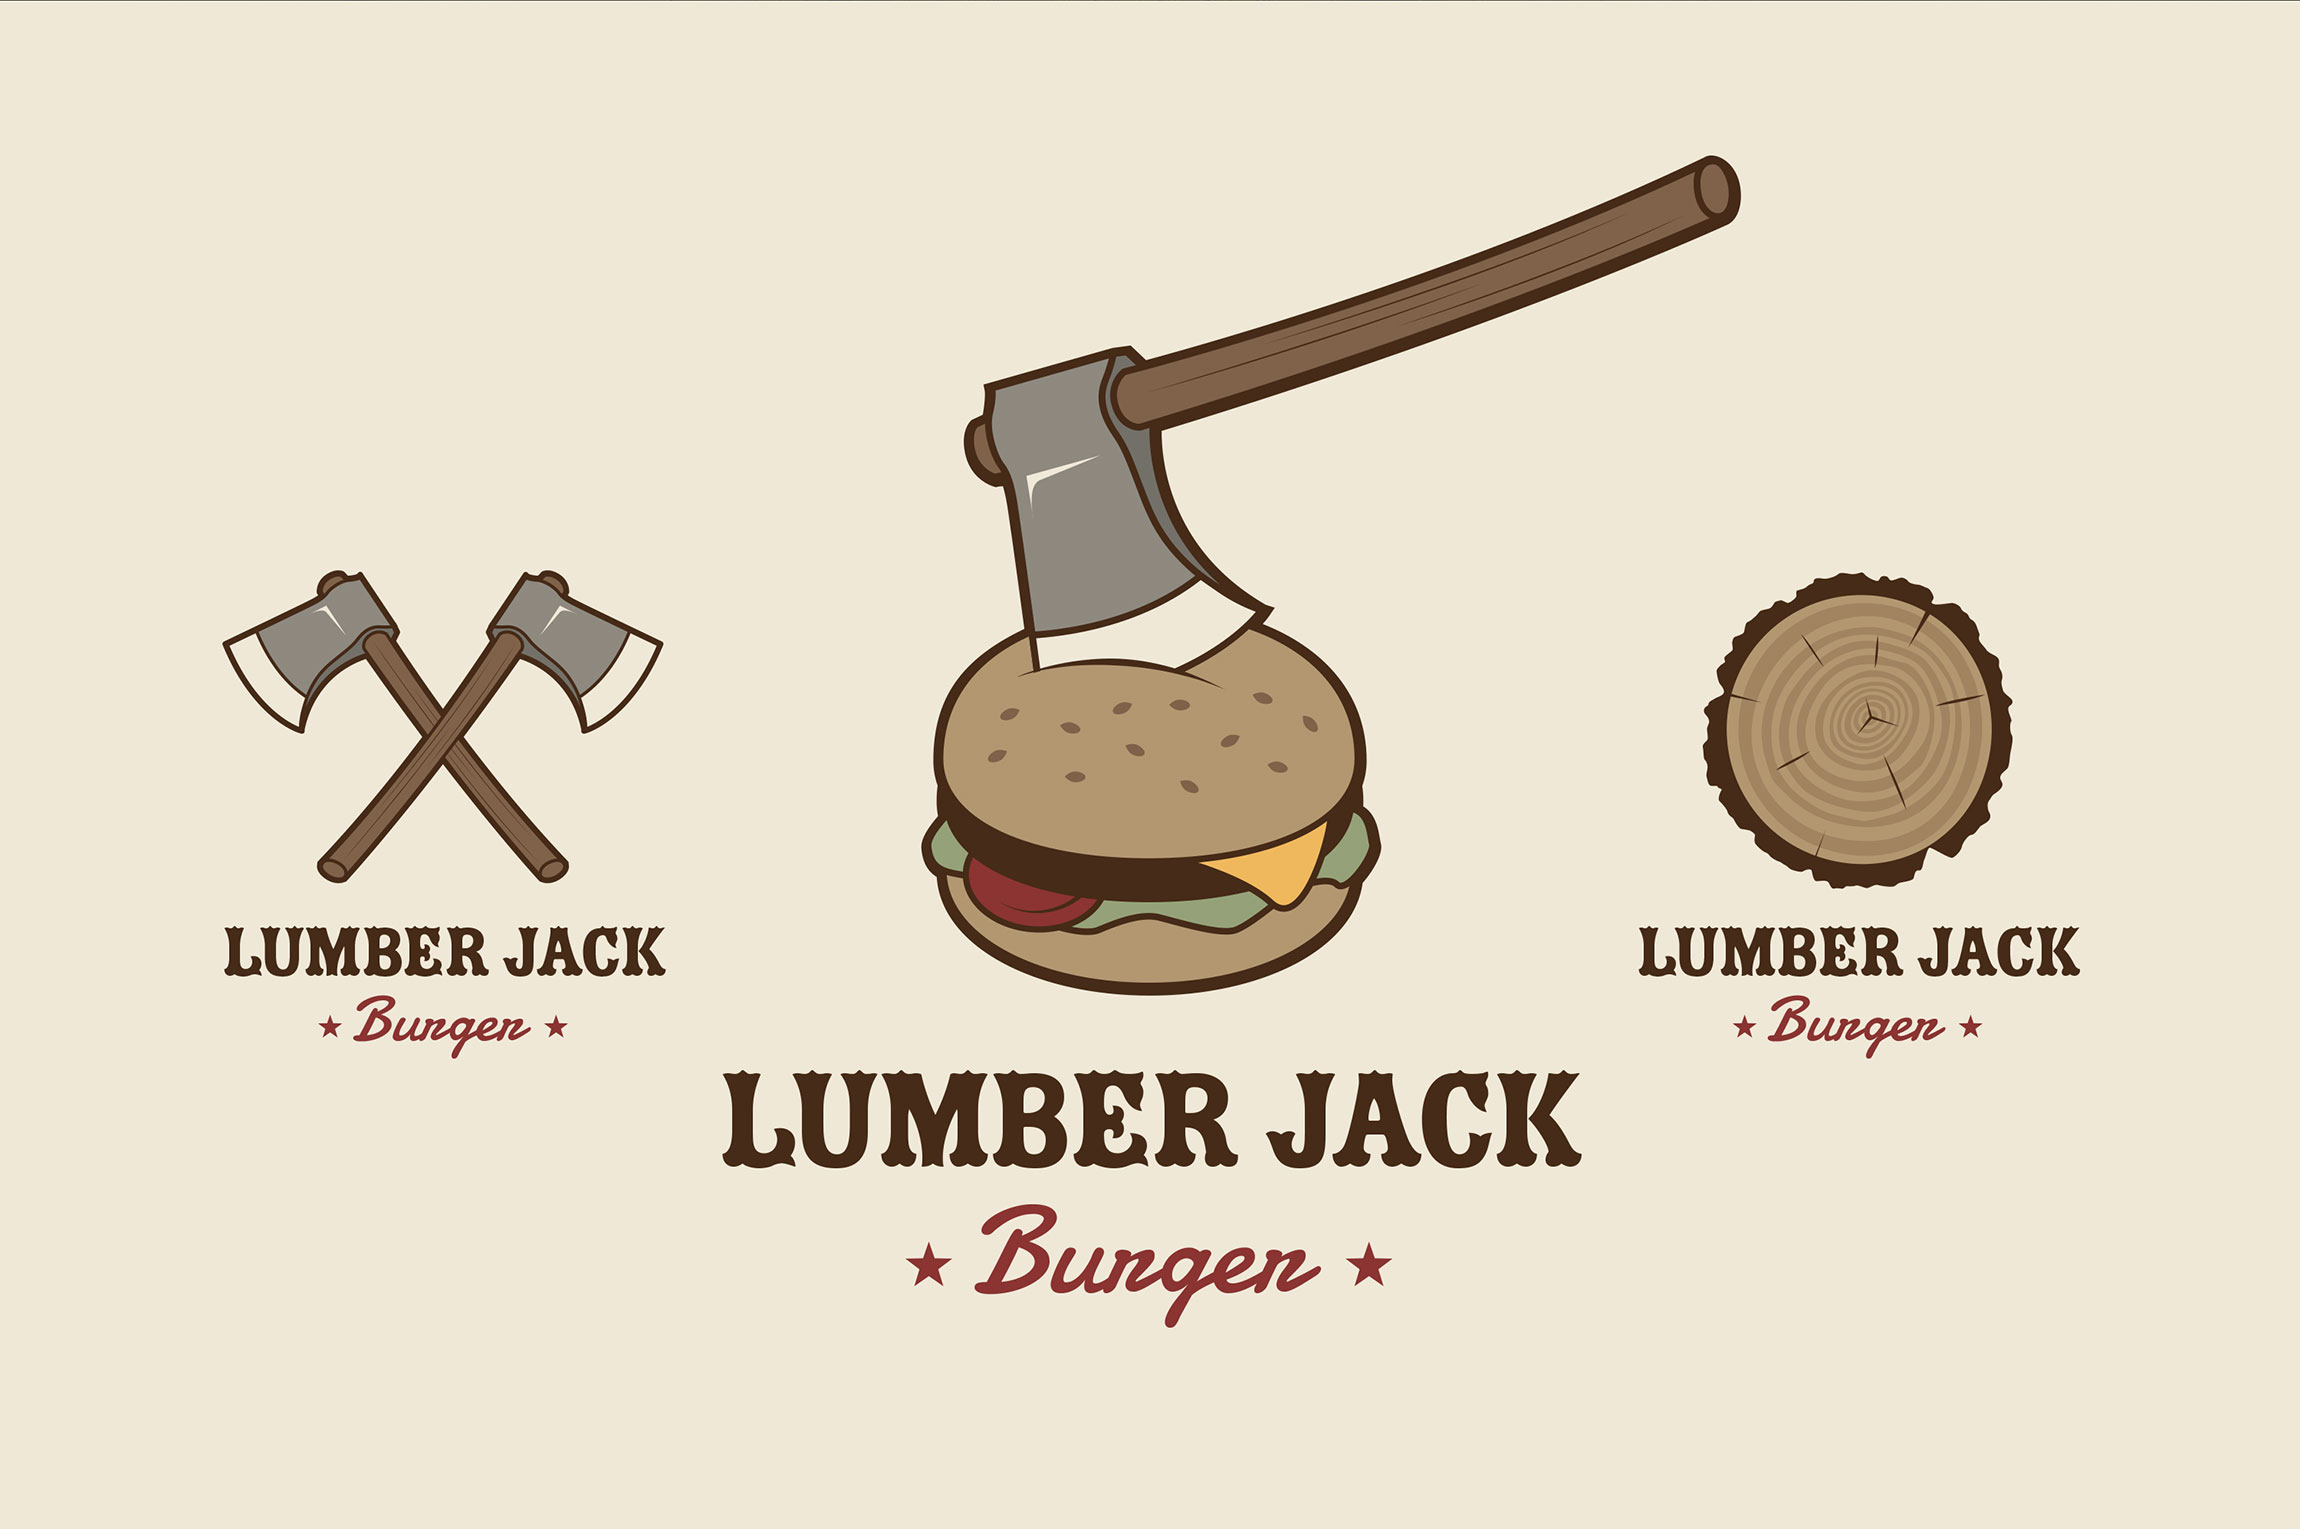 Création logo, mascotte, sticker, packaging pour le restaurant LUMBER JACK Burger